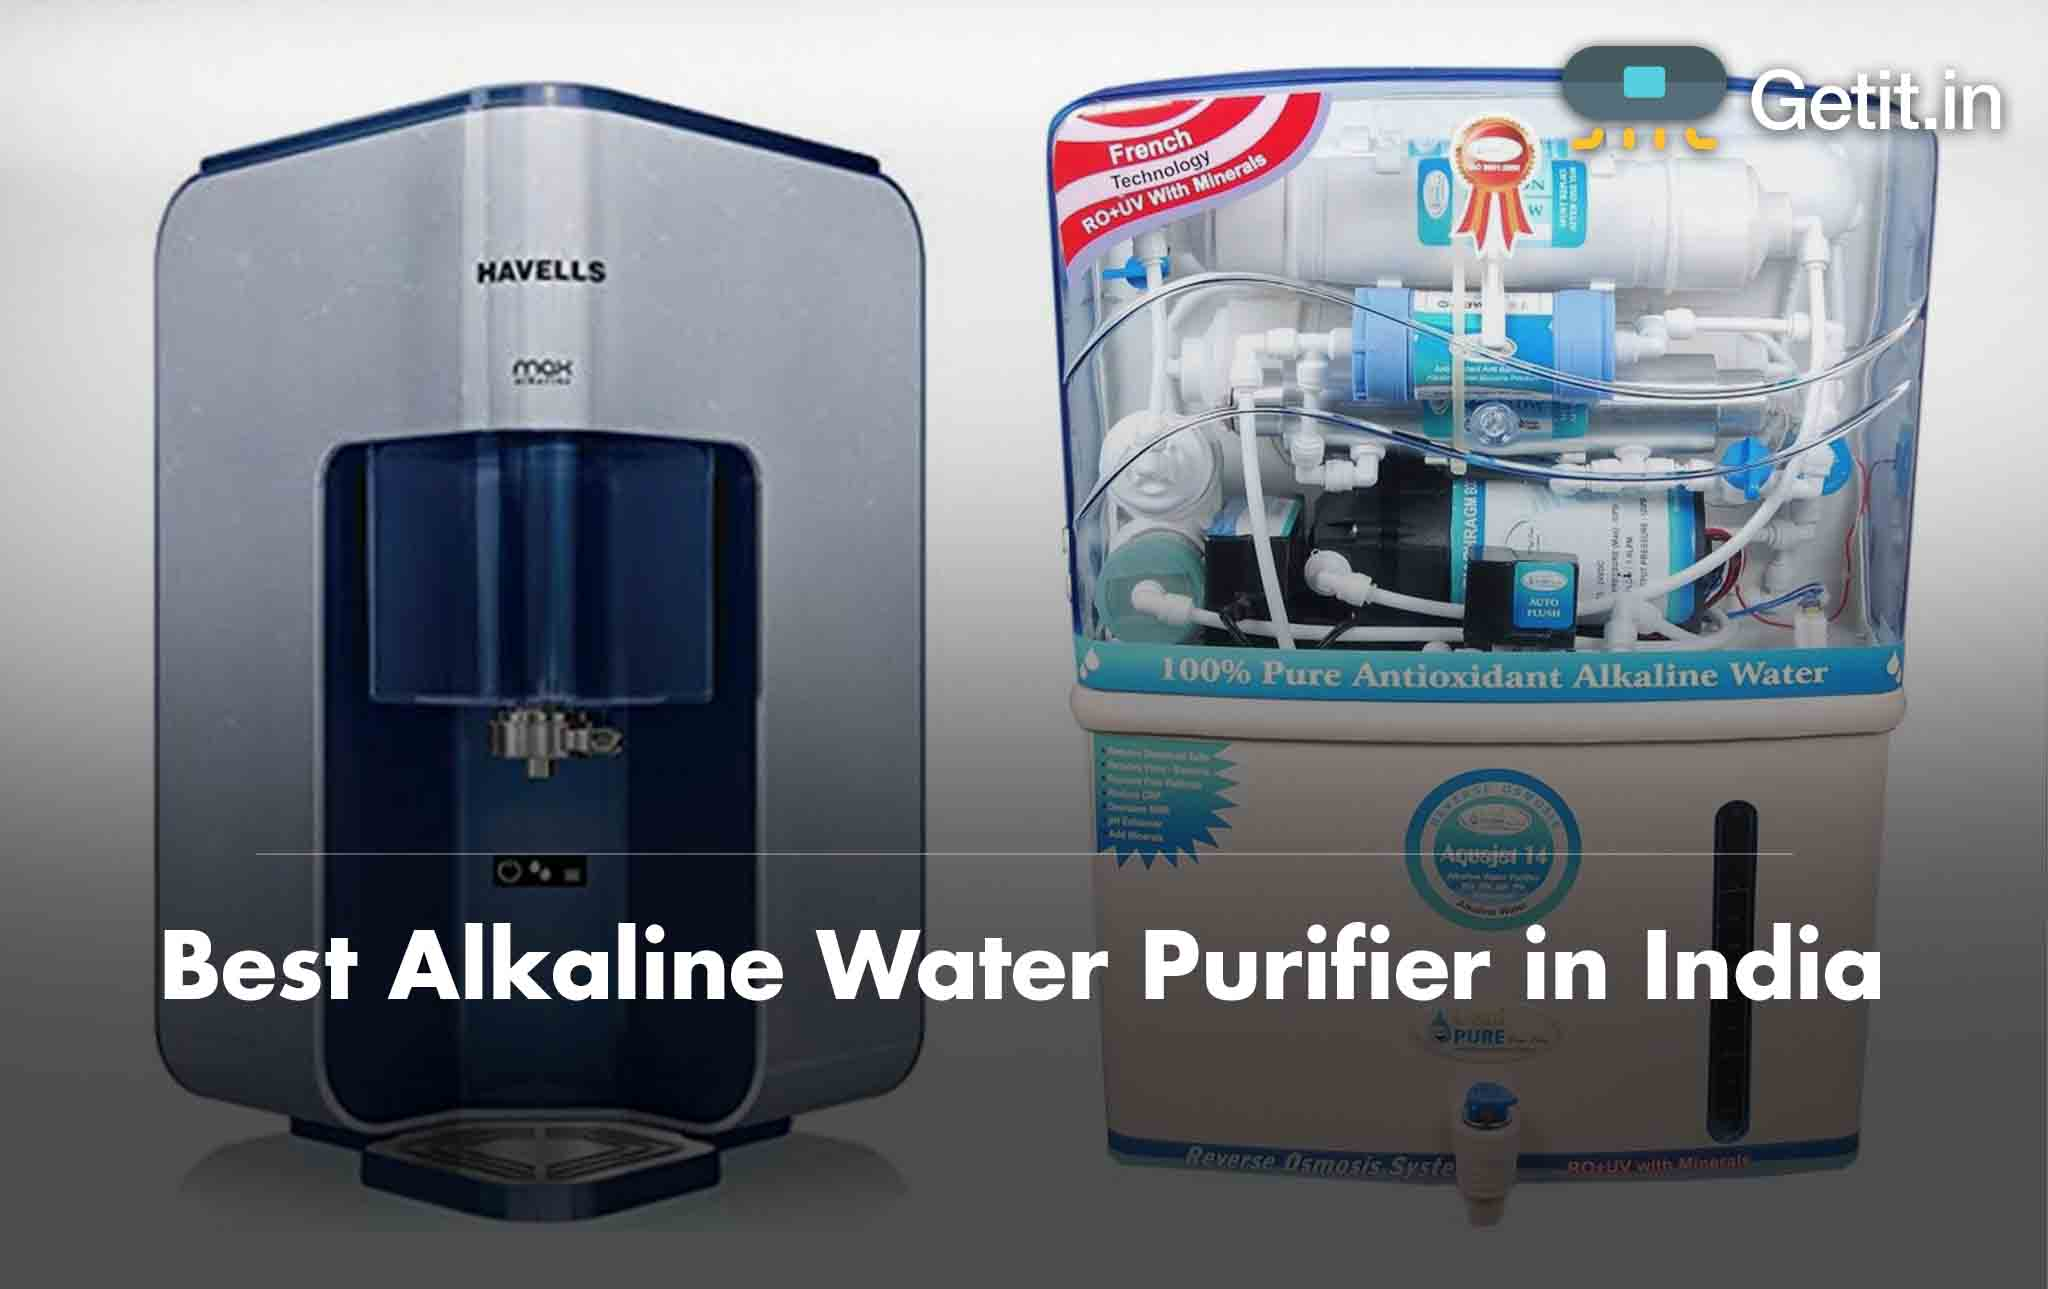 Best Alkaline Water Purifier in India